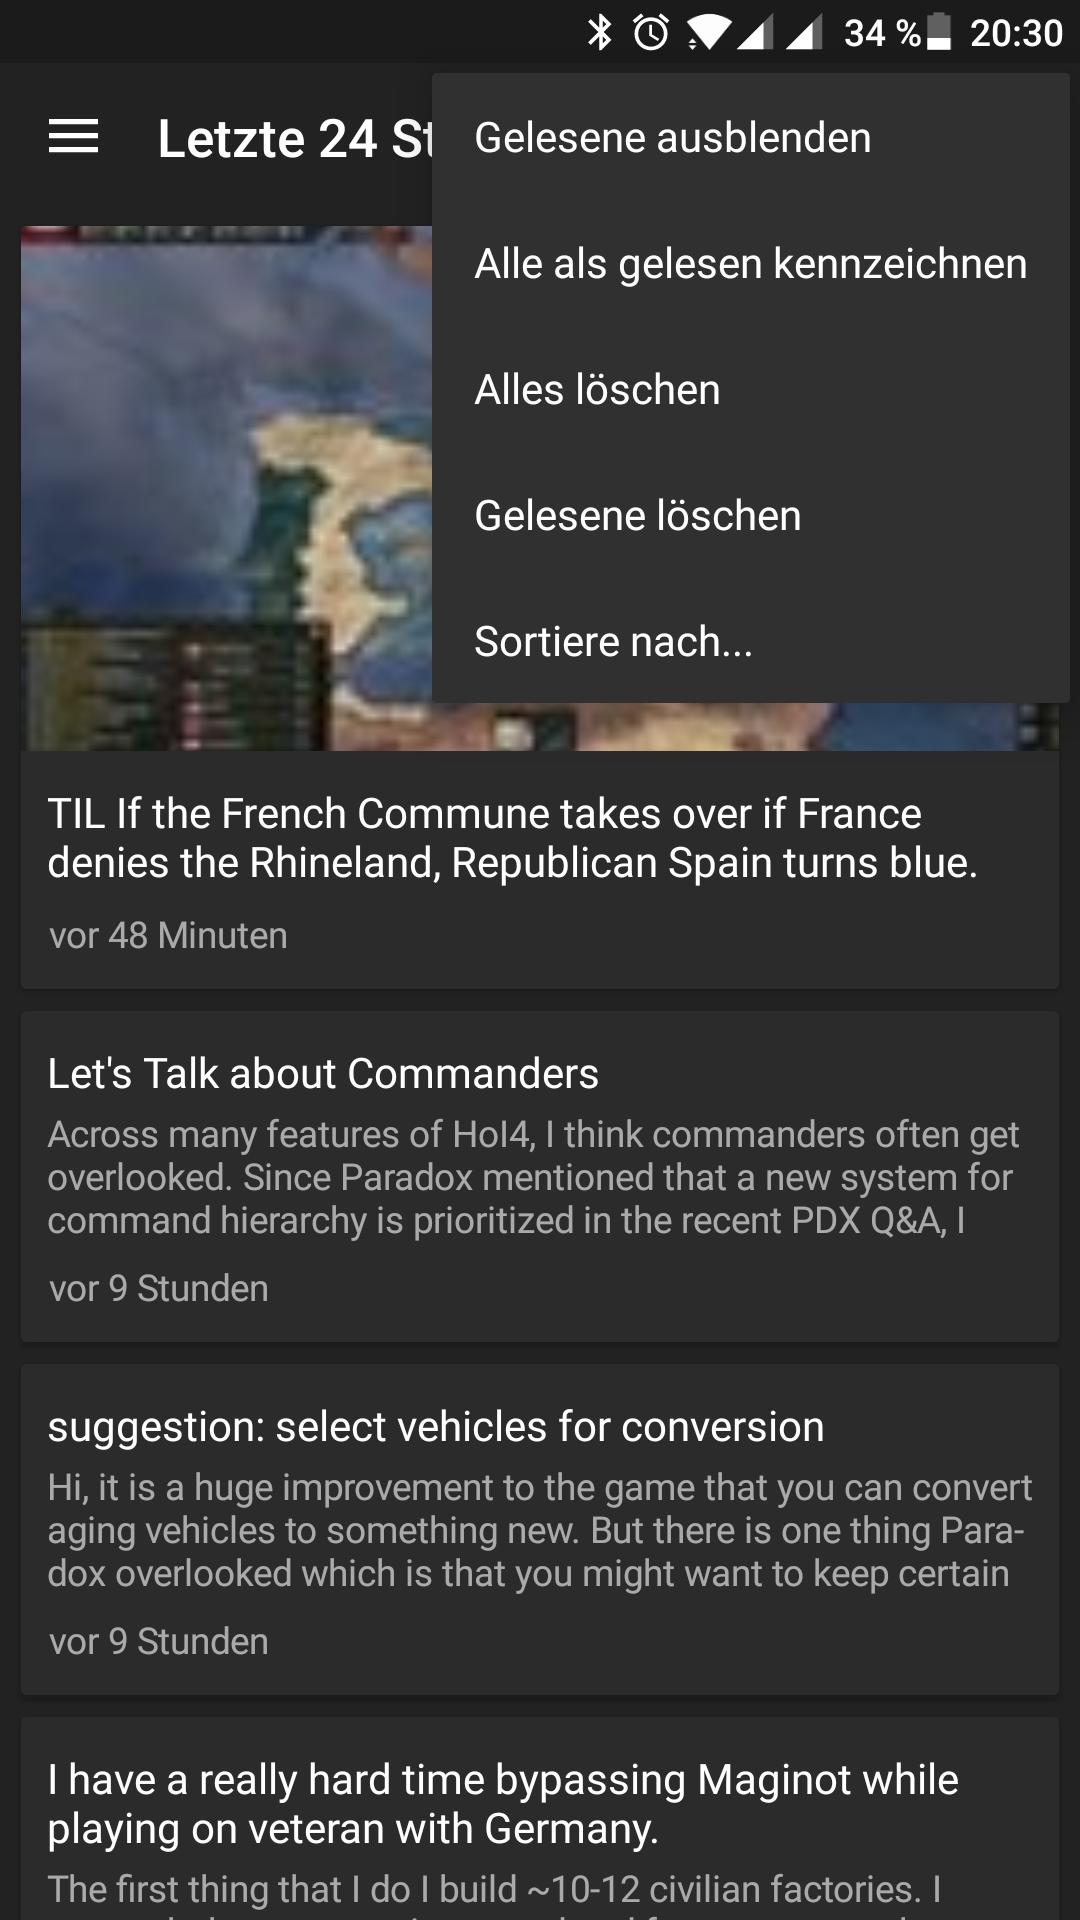 Hearts of Iron 4 - News for Android - APK Download